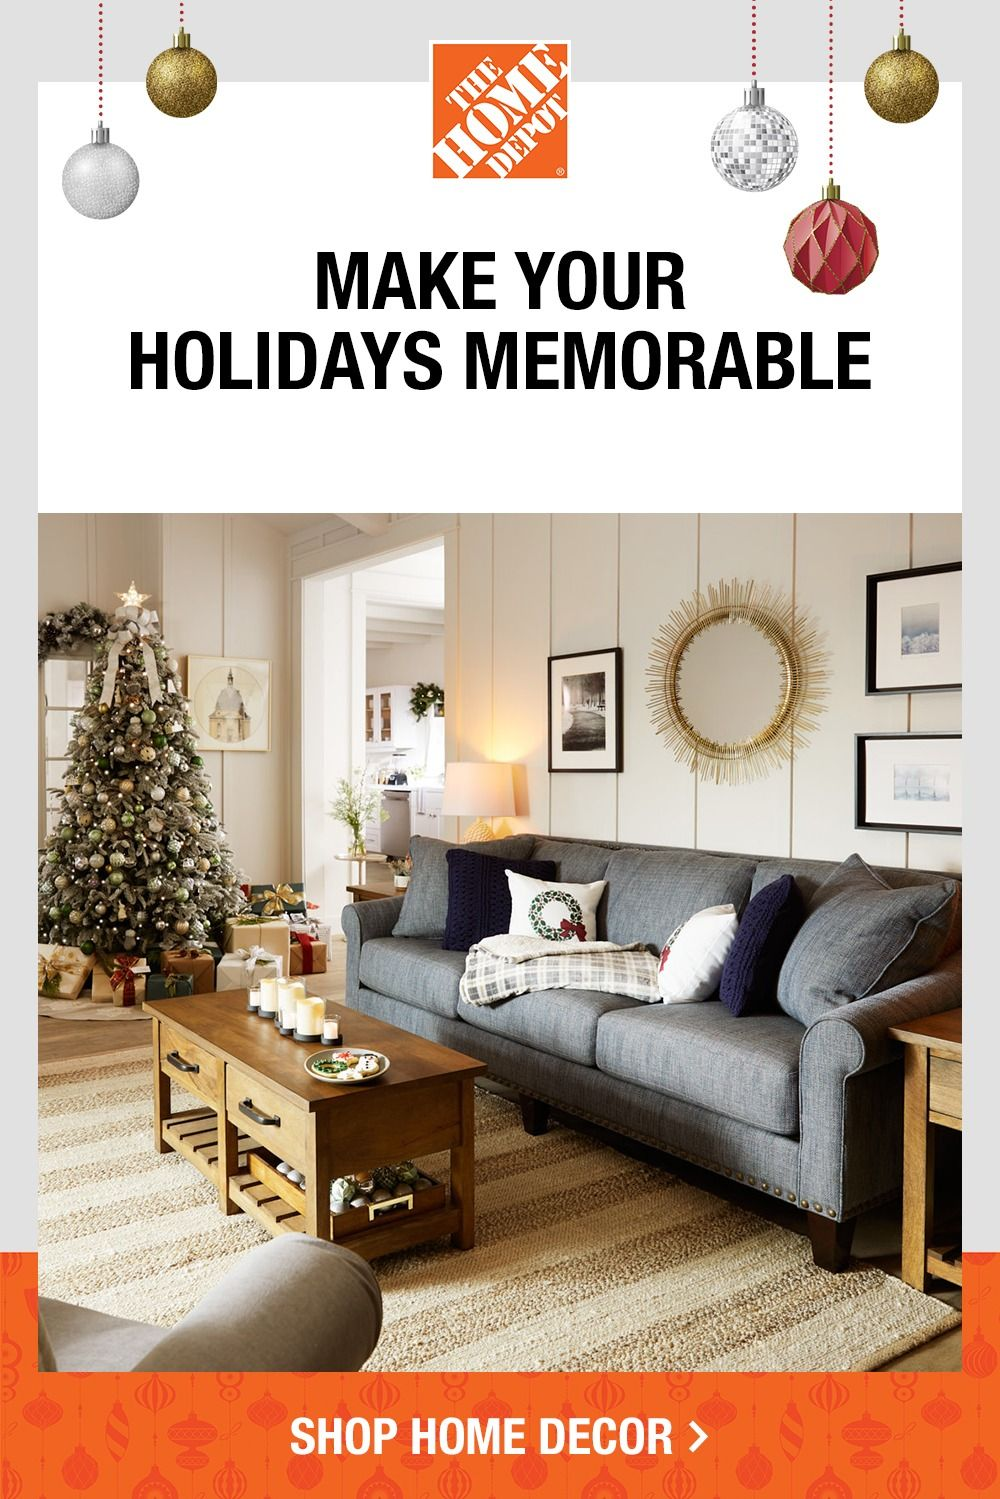 Make Holiday Memories In The Perfect Space With Furniture And Decor Online At The Home Depot Holiday Living Room Home Home Decor